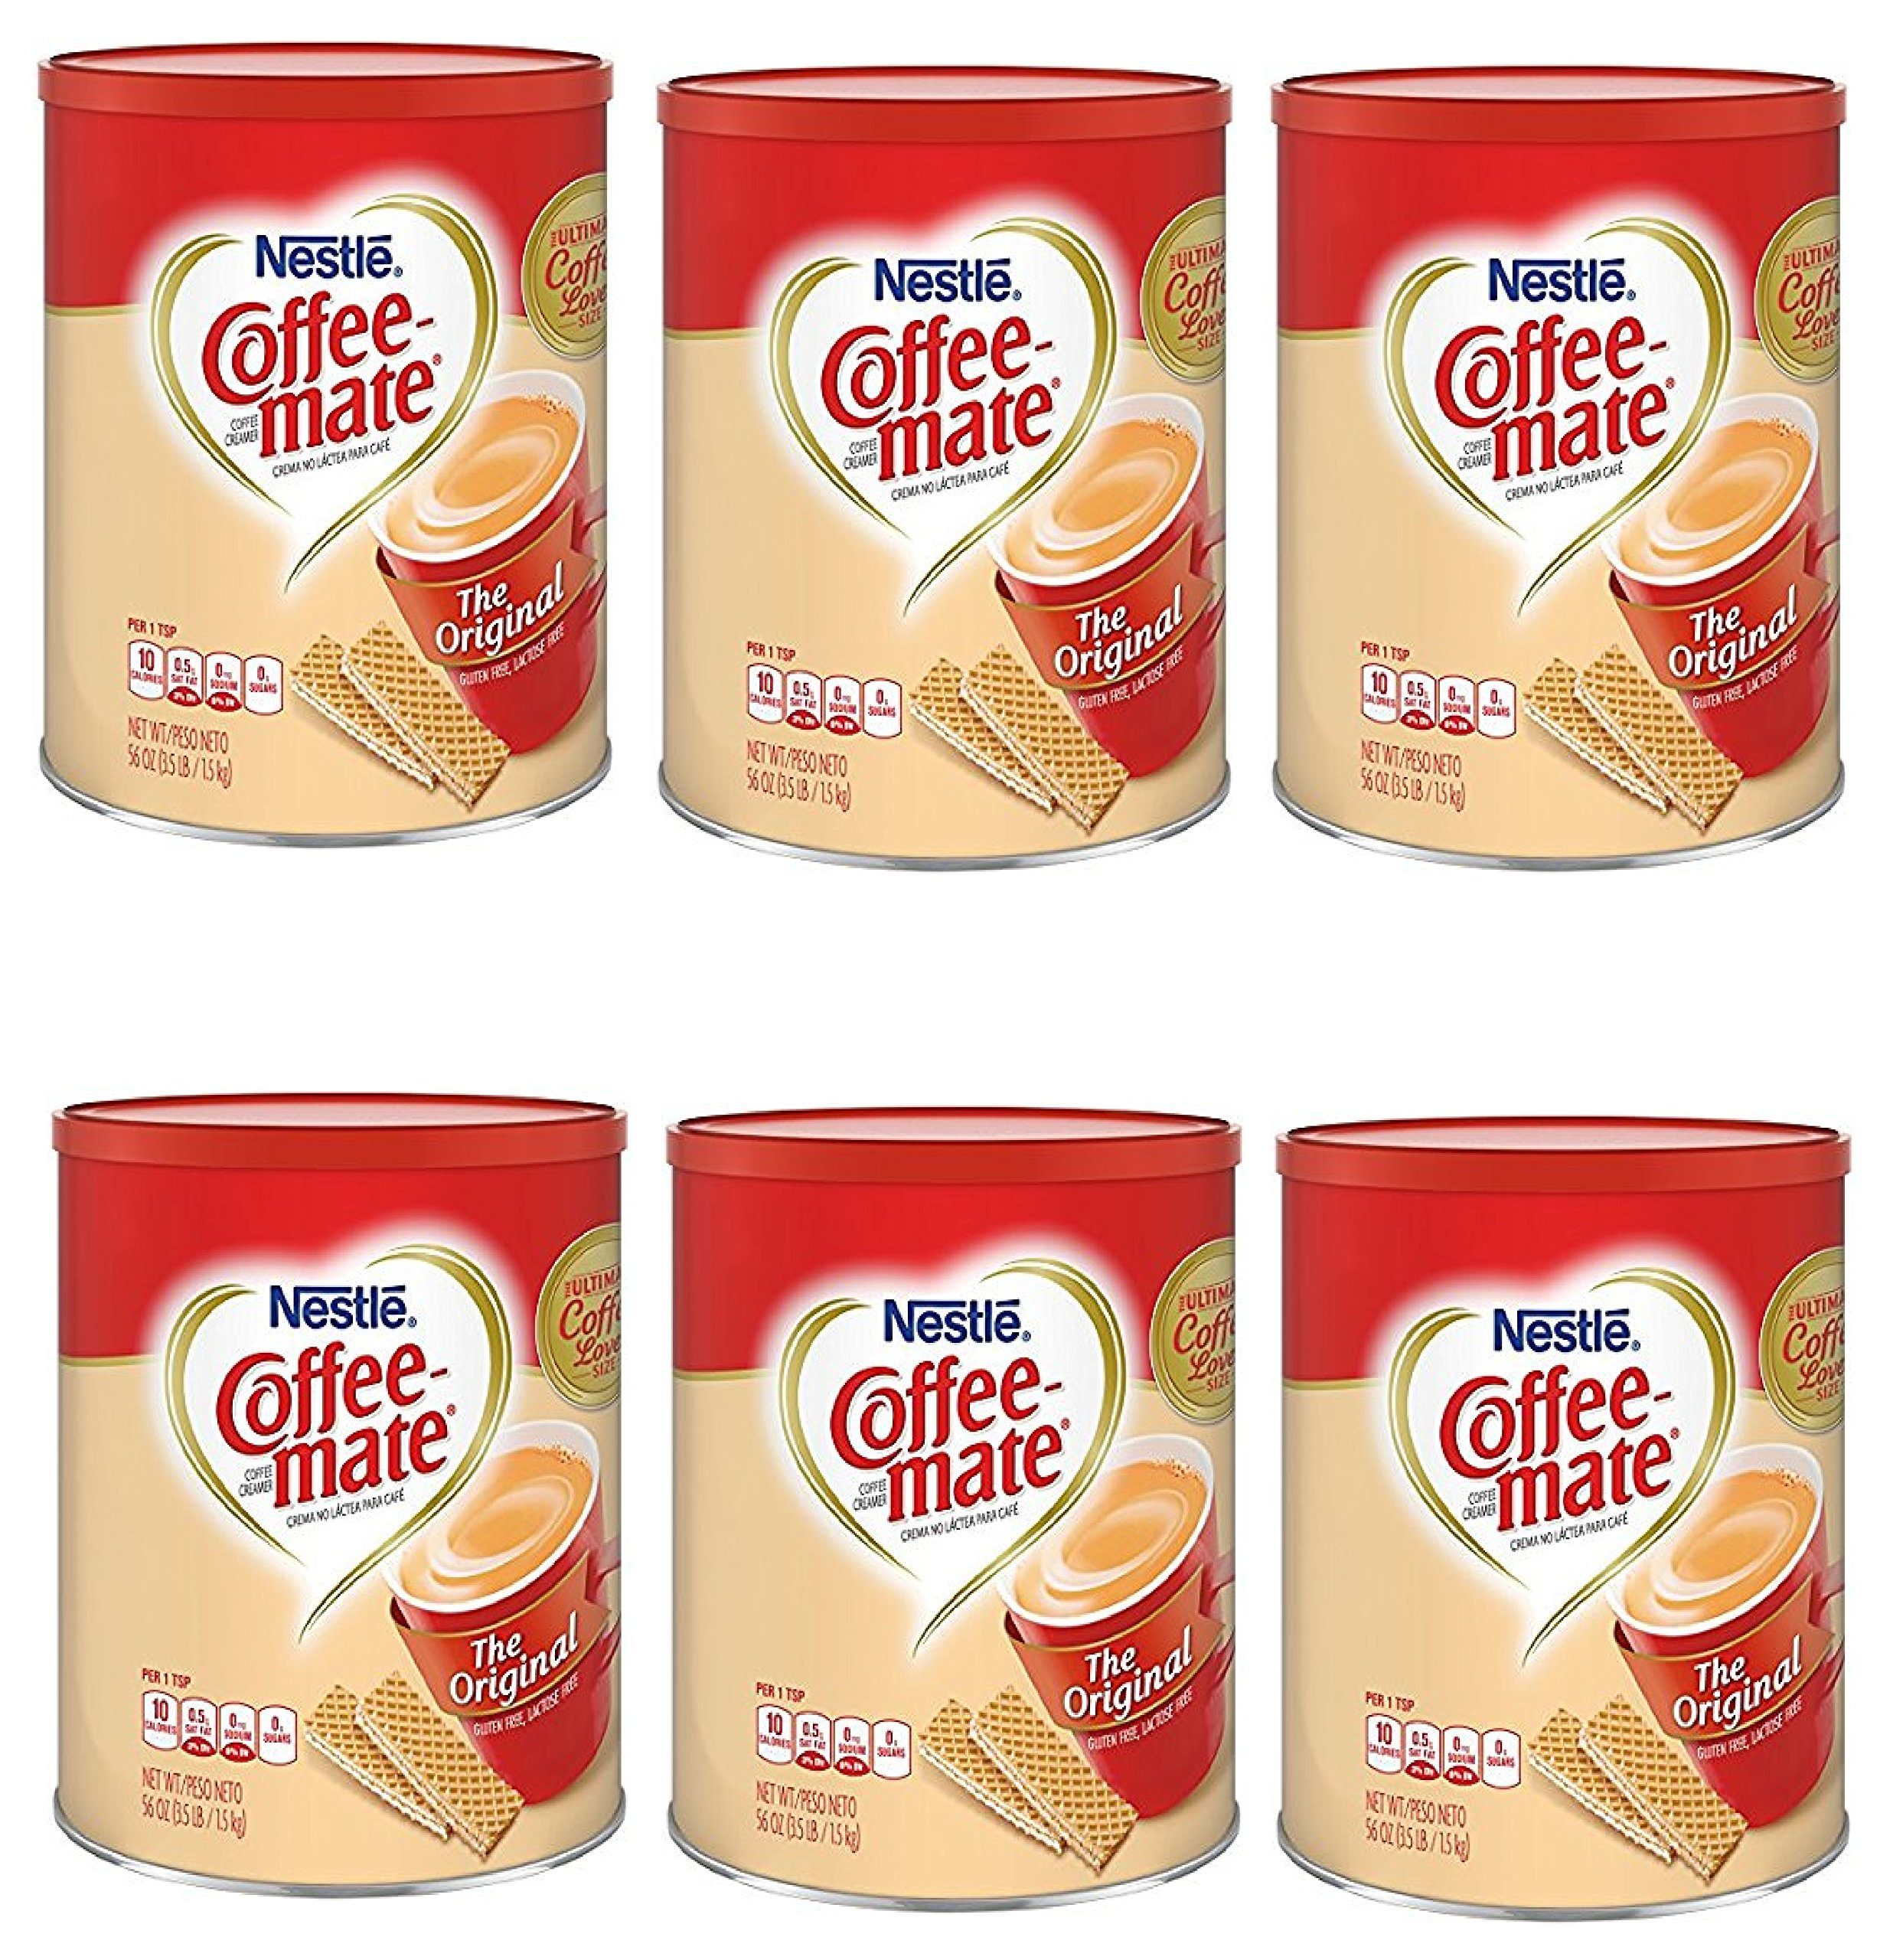 Nestle Coffee-mate Coffee Creamer 56oz. canister (6 Pack) by Nestle